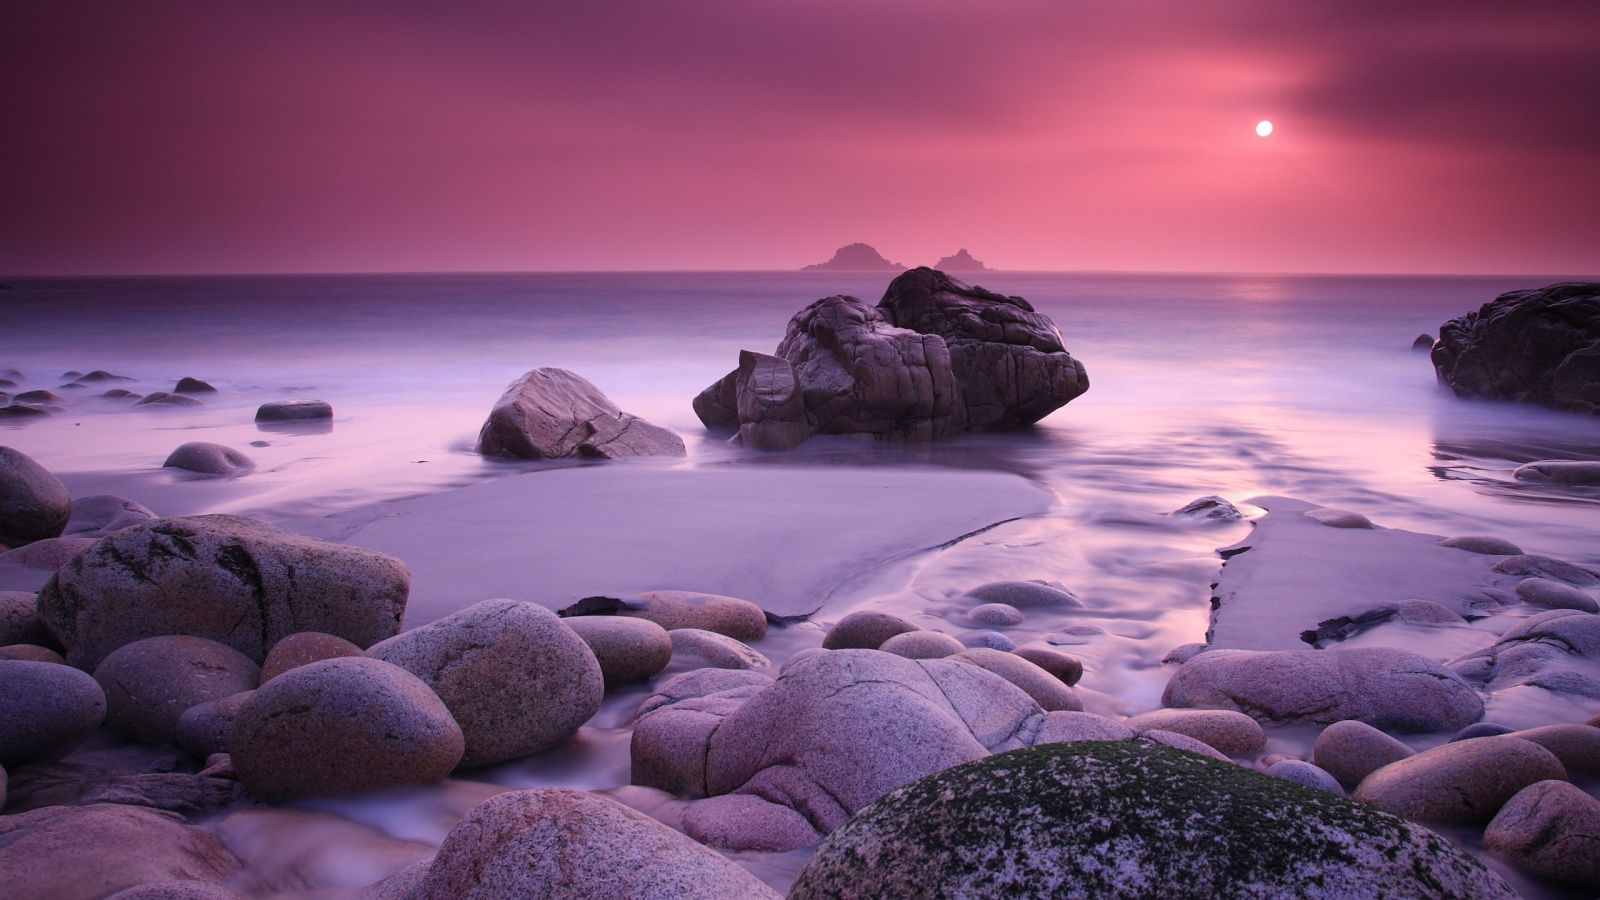 hd beautiful coast wallpapers and photos | hd landscape wallpapers